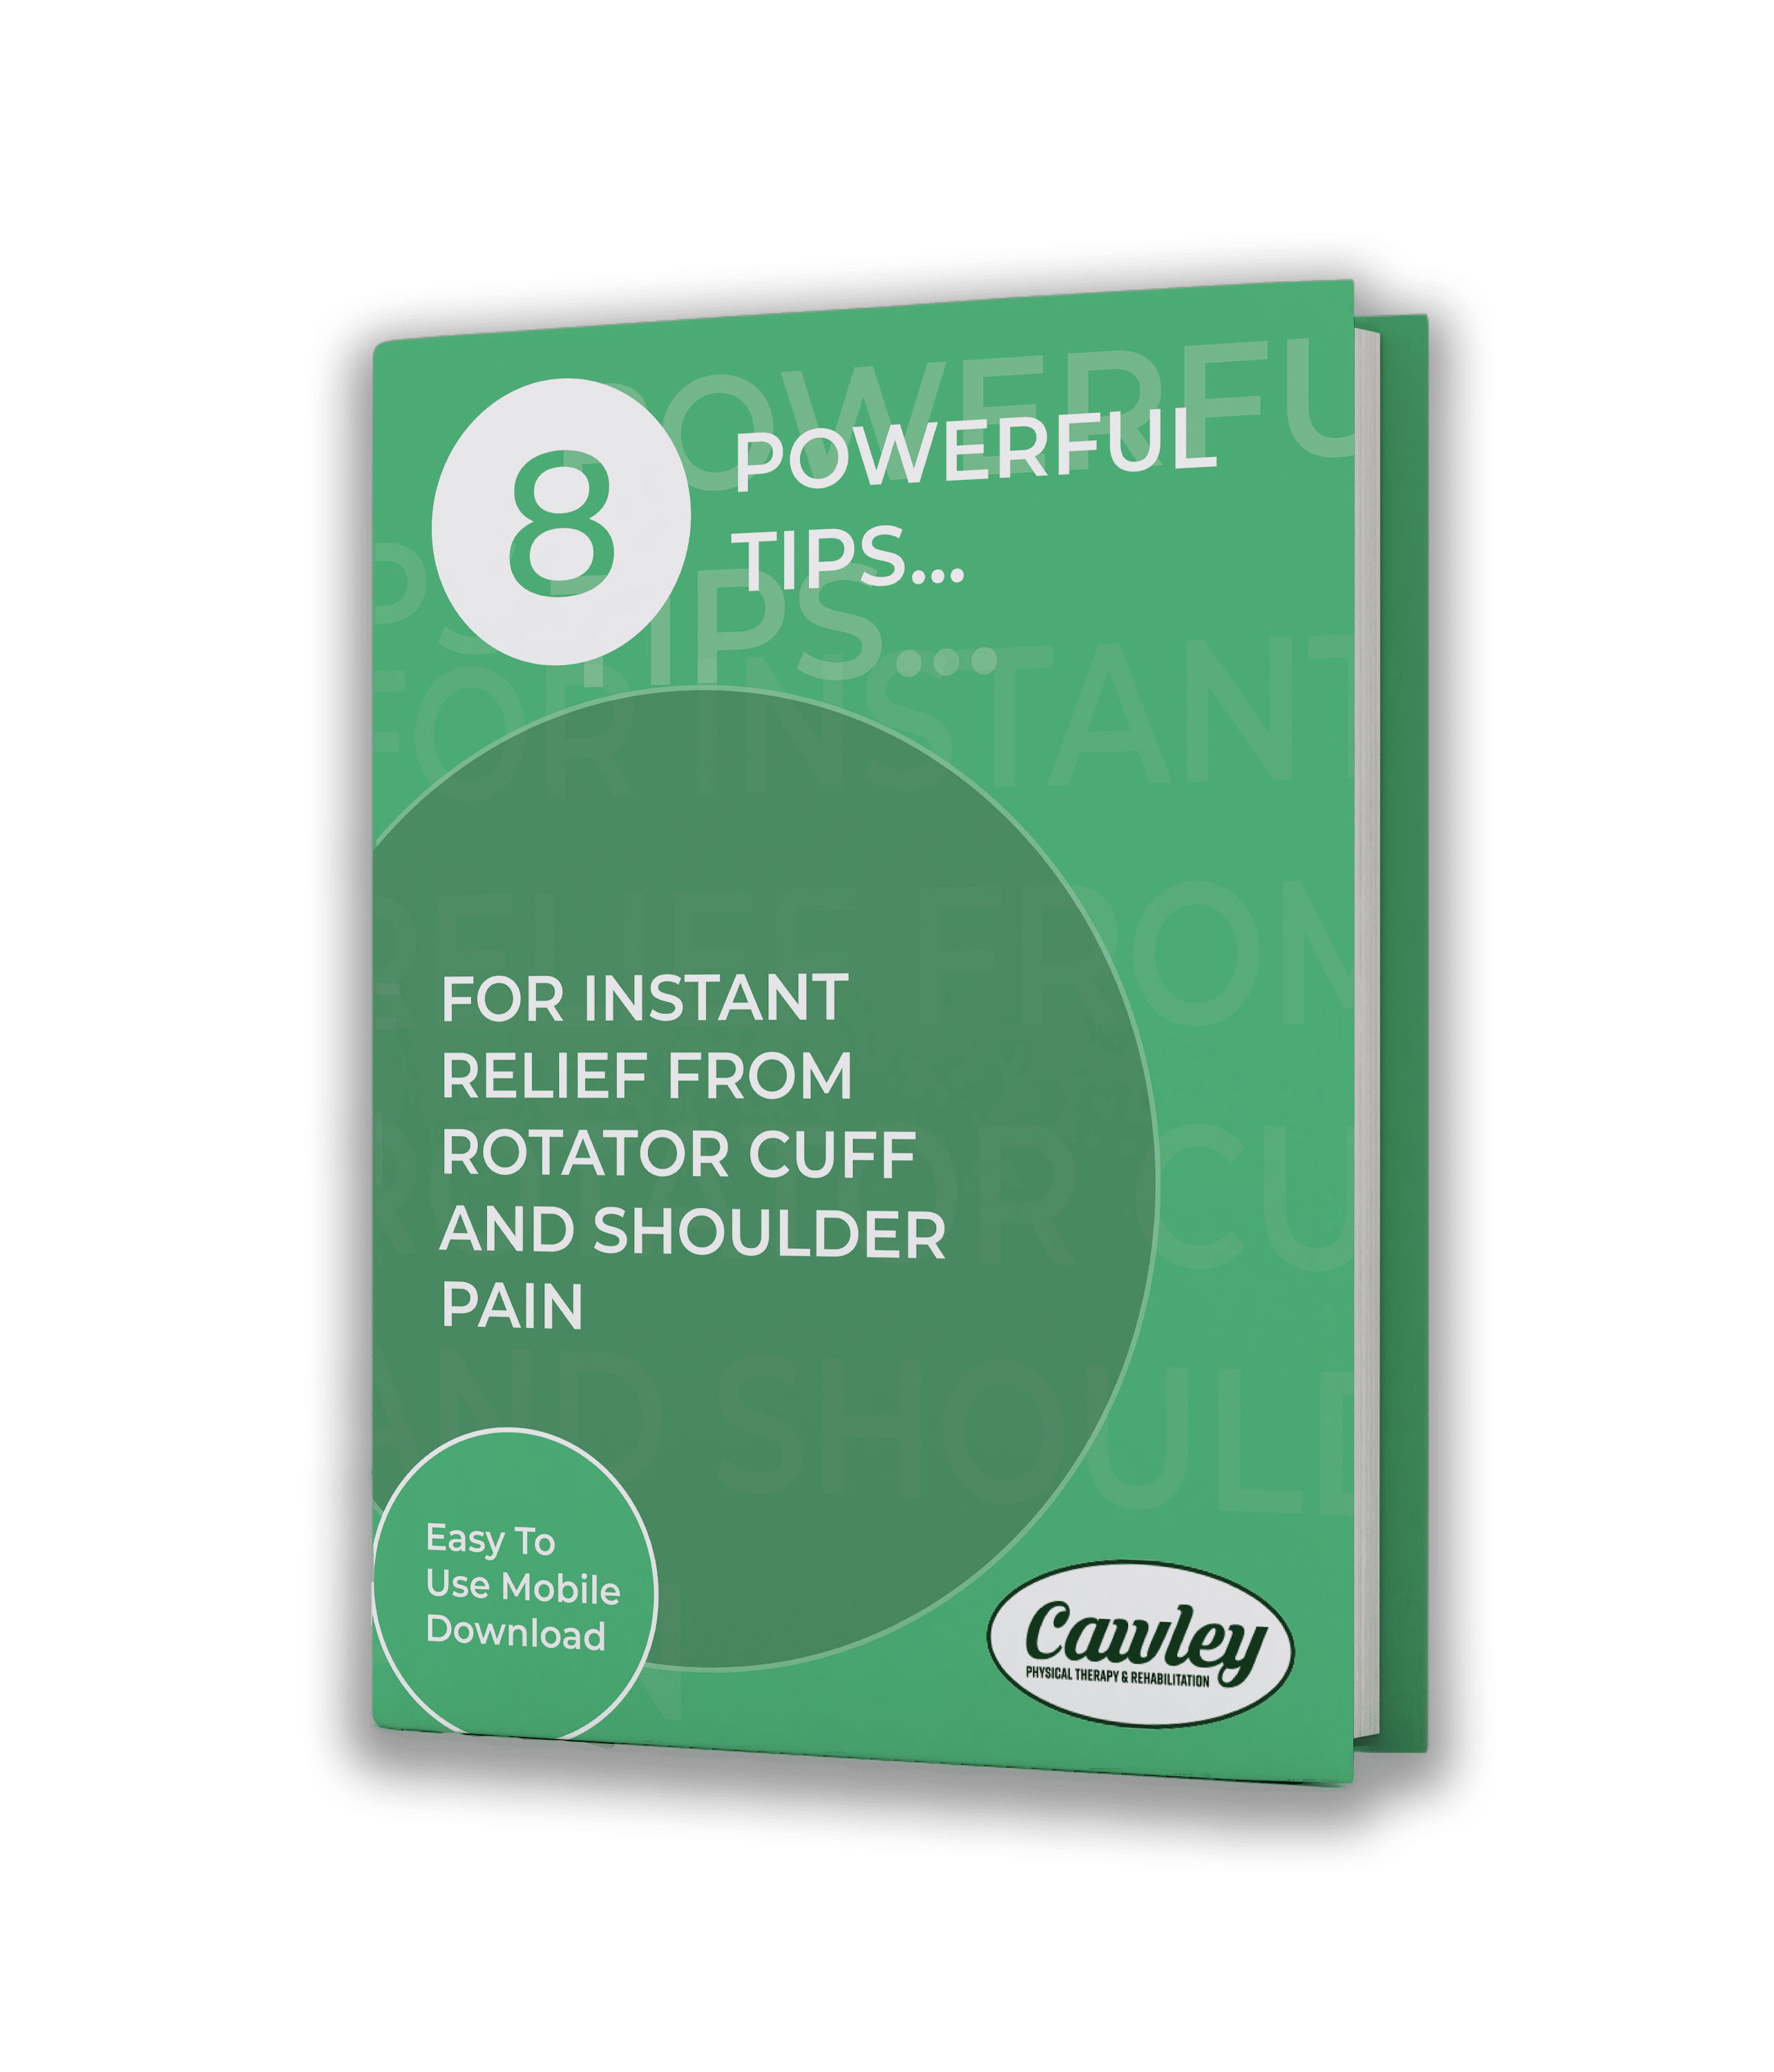 8 Powerful Tips for Instant Relief from Rotator Cuff and Shoulder Pain